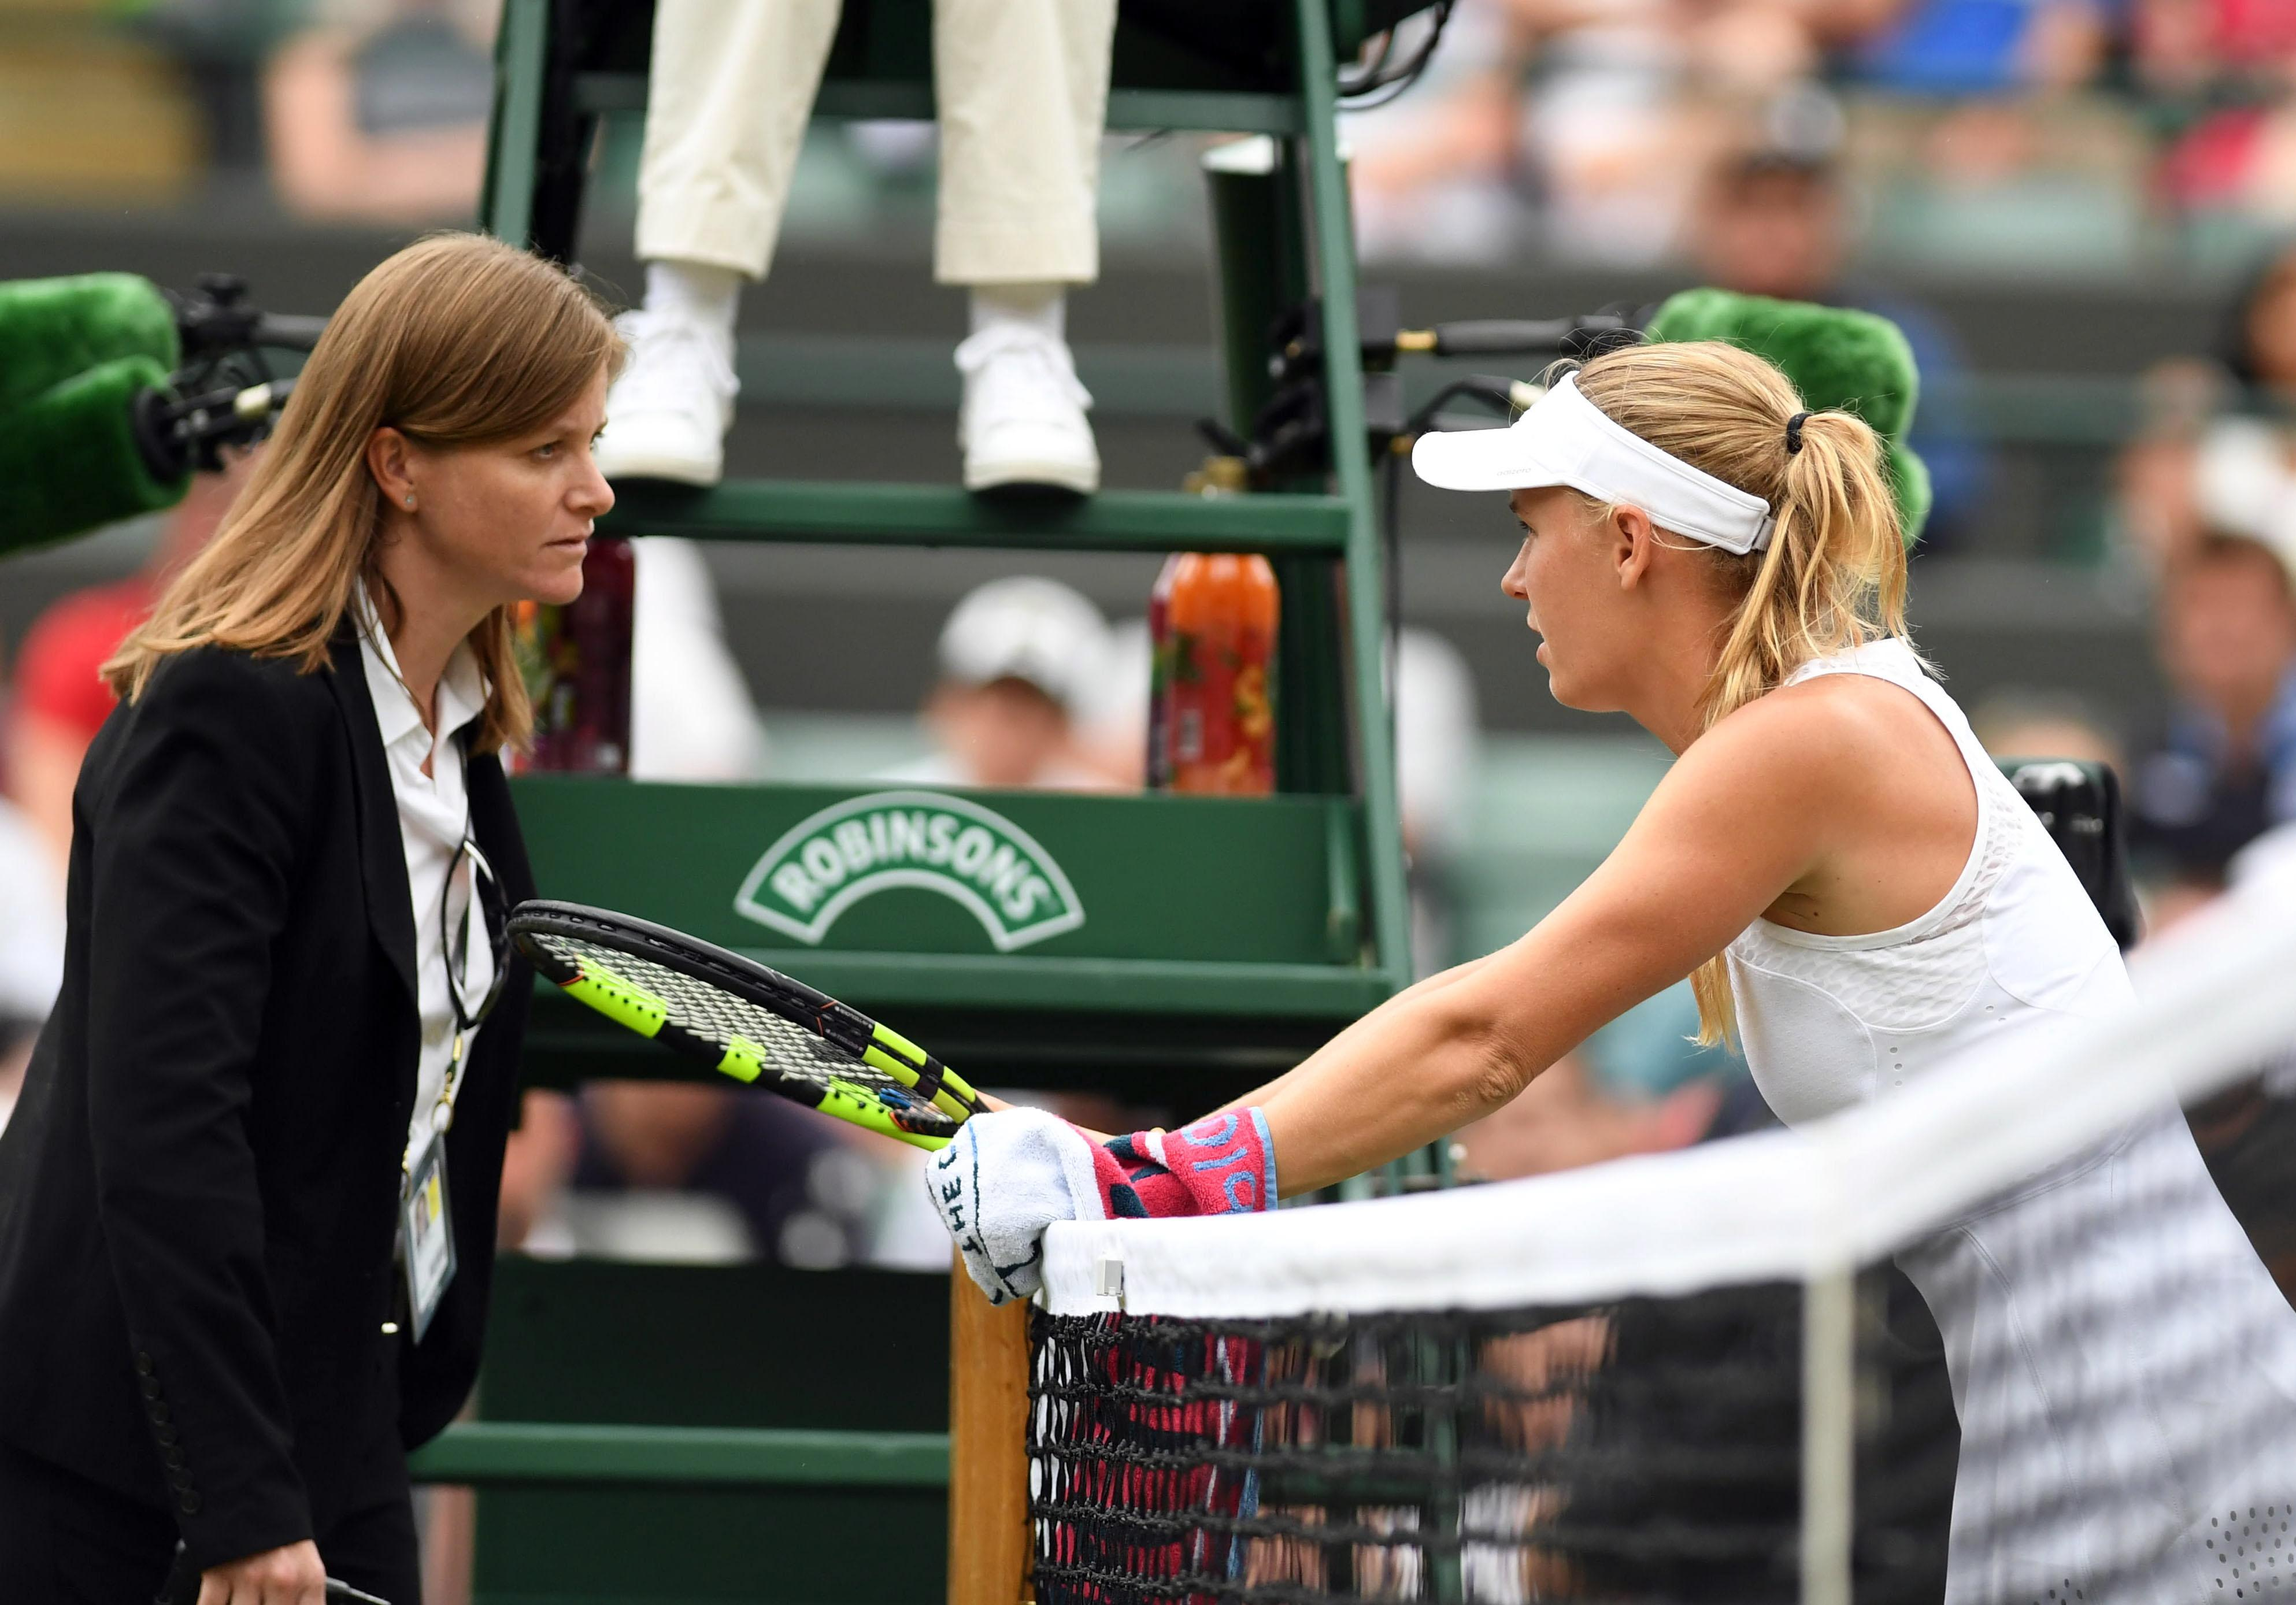 Wozniacki complained about a flying ant invasion during her defeat to Makarova at Wimbledon